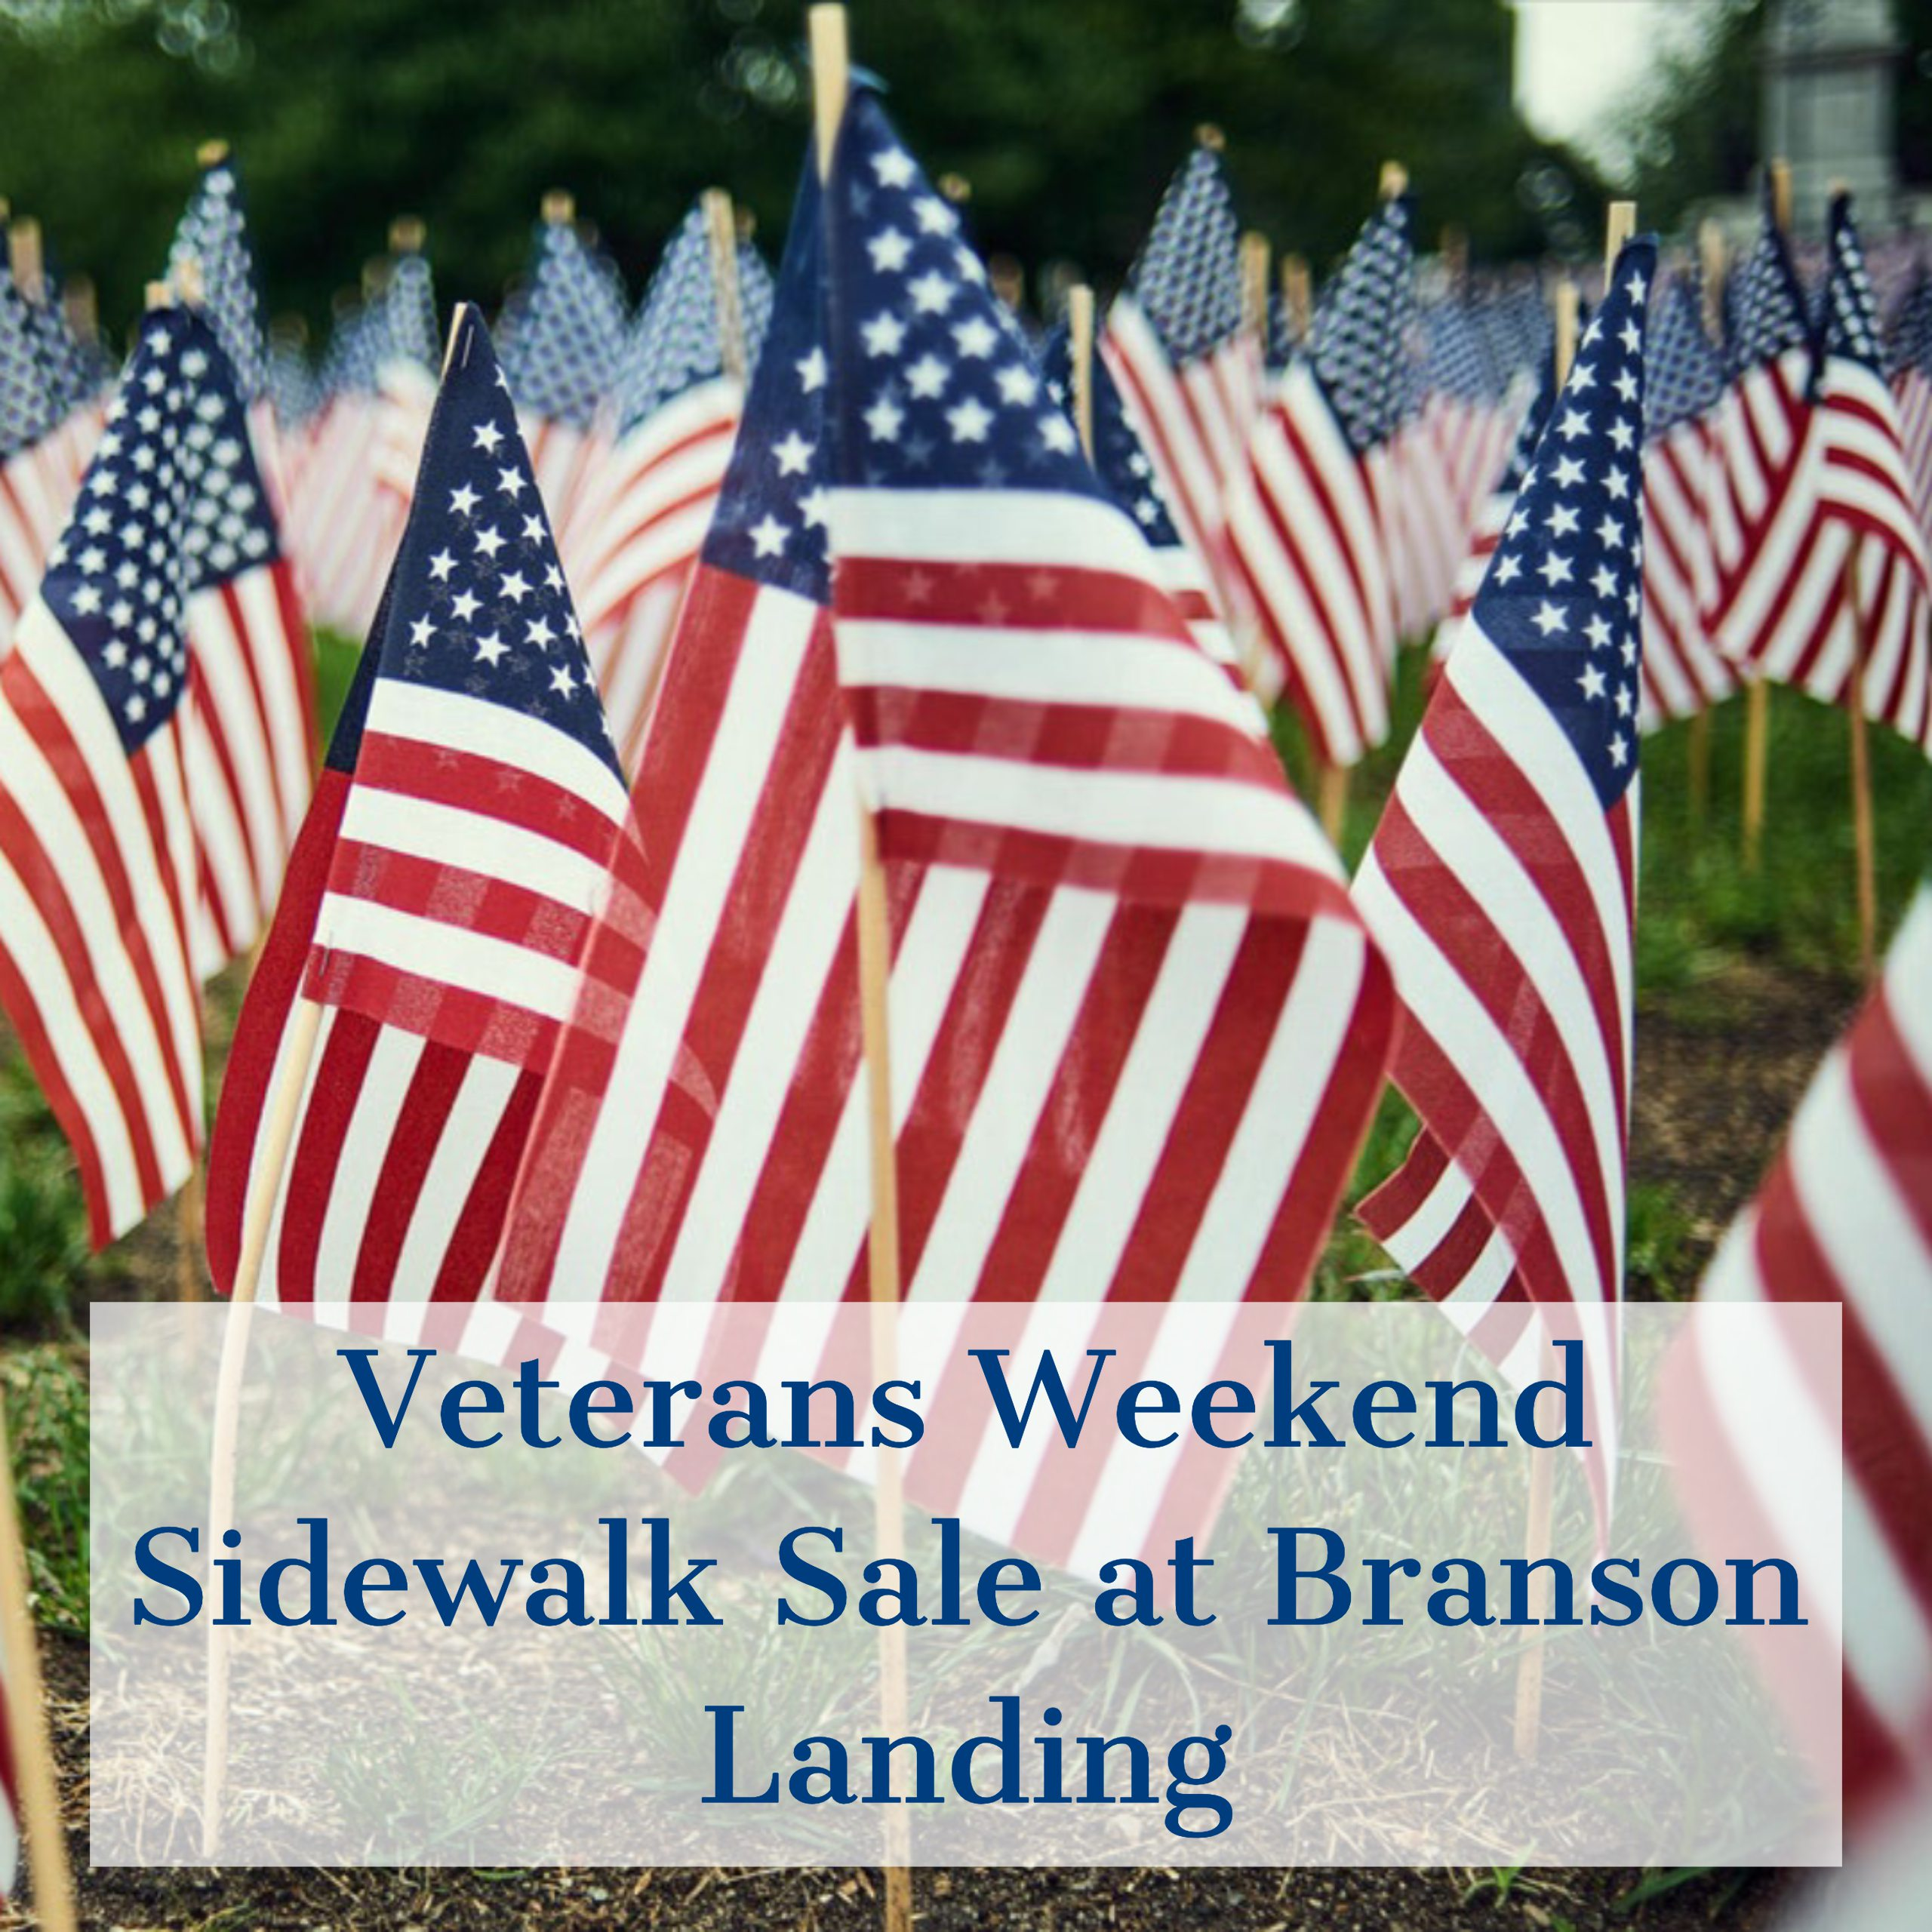 VETERANS DAY WEEKEND SIDEWALK SALE AT BRANSON LANDING